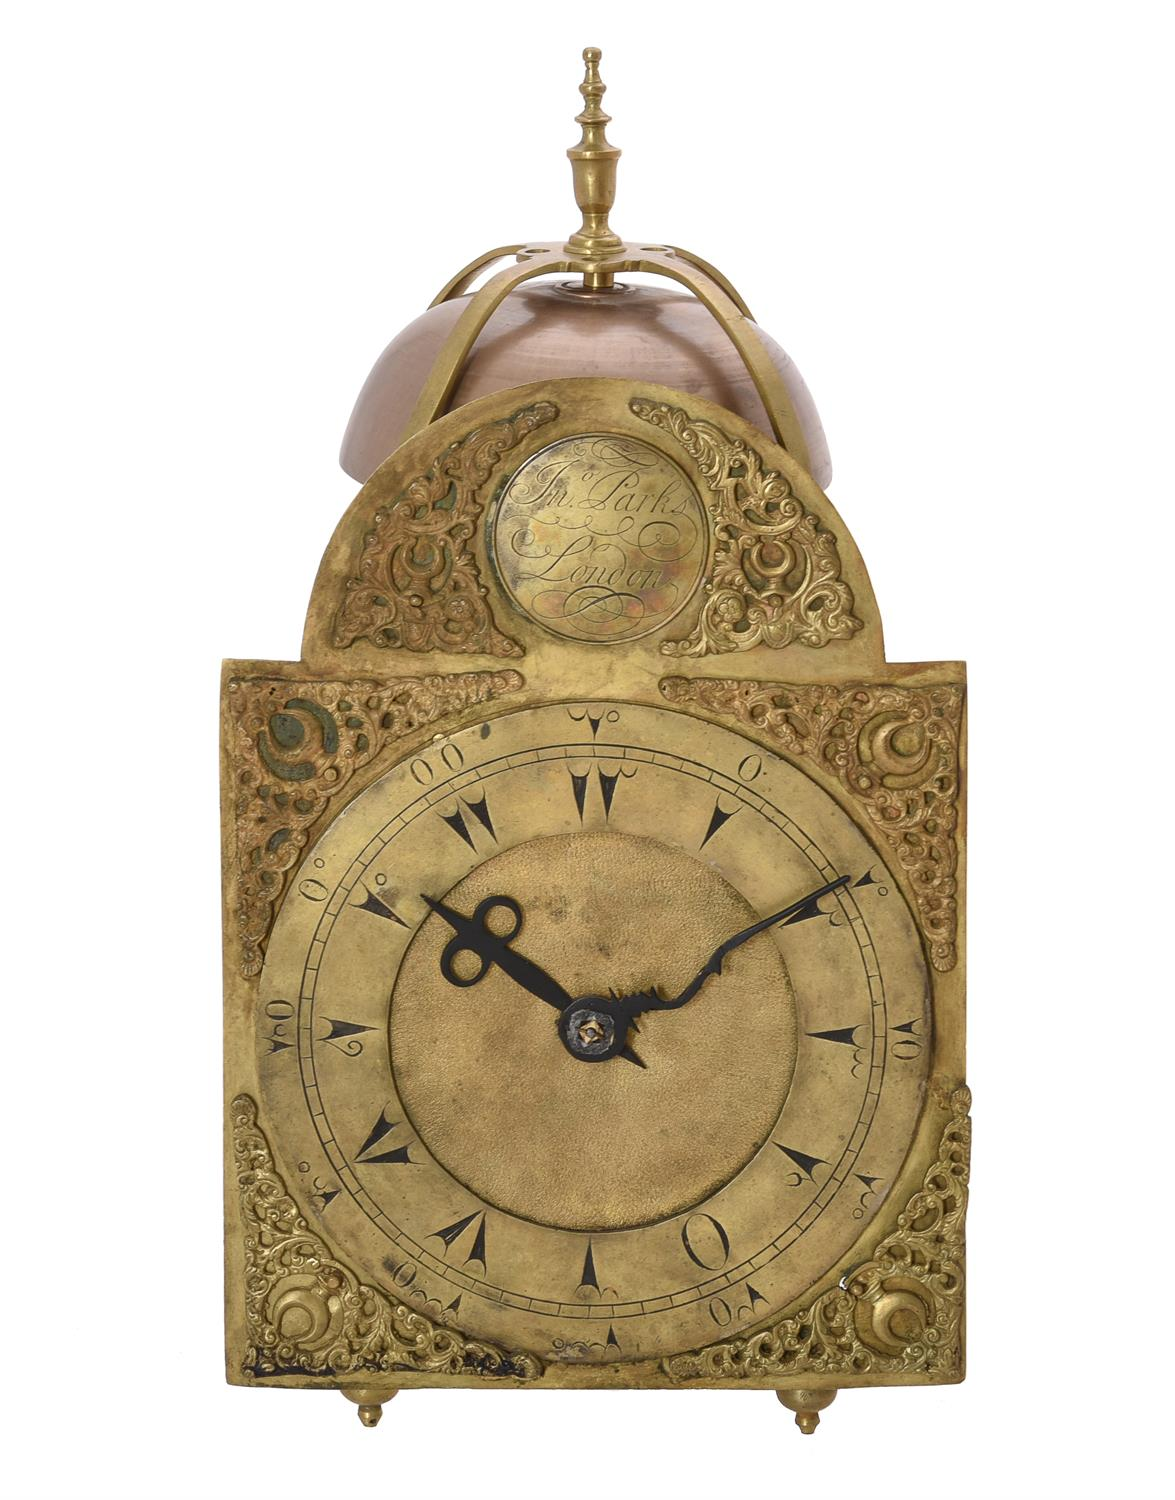 A George III brass lantern clock made for the Middle Eastern market